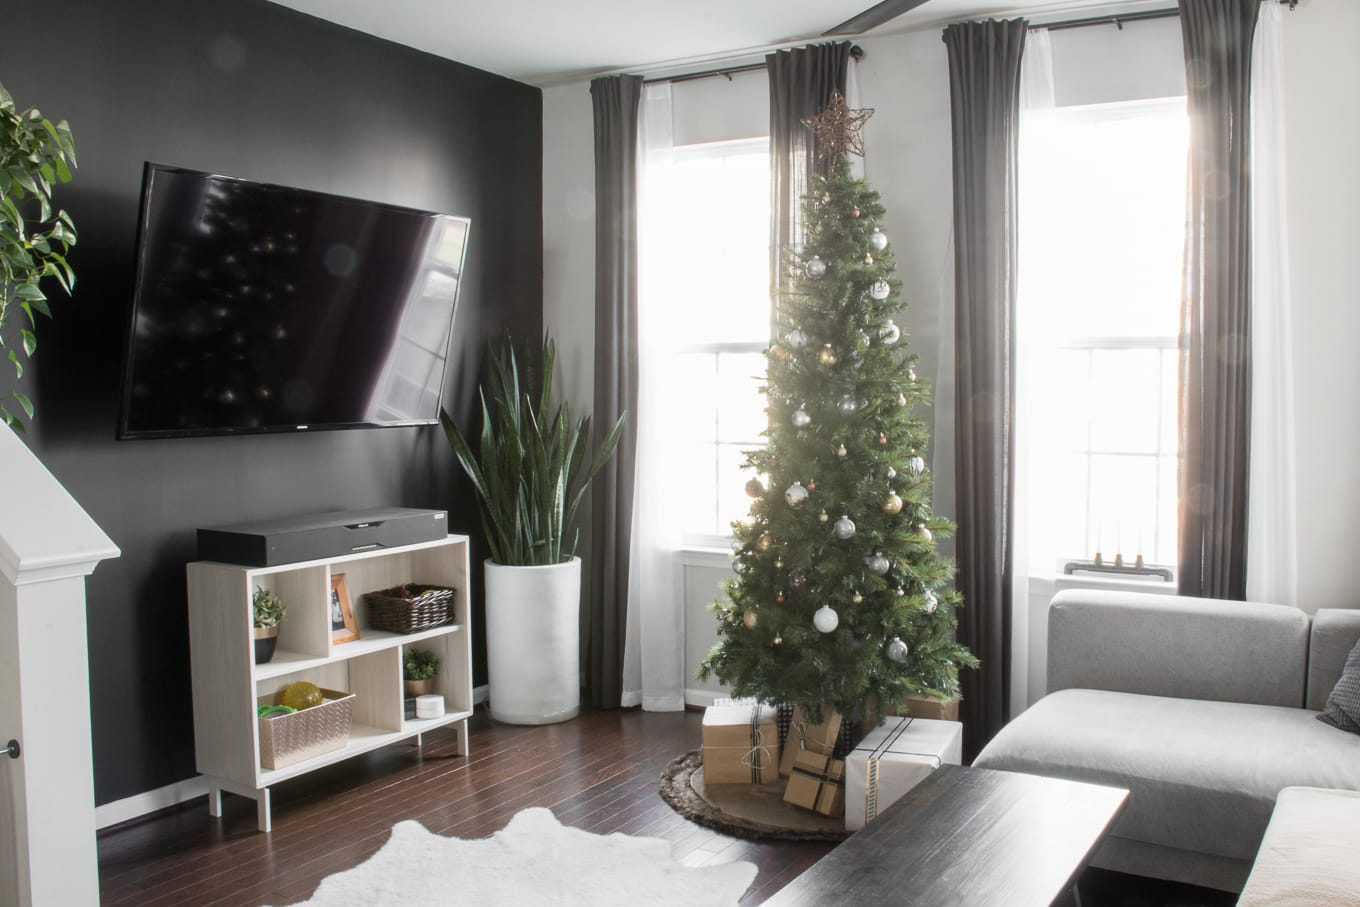 Our simple, understated Christmas decor is clean and modern while still getting us in the festive holiday spirit #christmasdecor #holidaydecor #scandistyle #simplechristmasdecor #modernchristmasdecor #neutralchristmasdecor #neutralholidaydecor